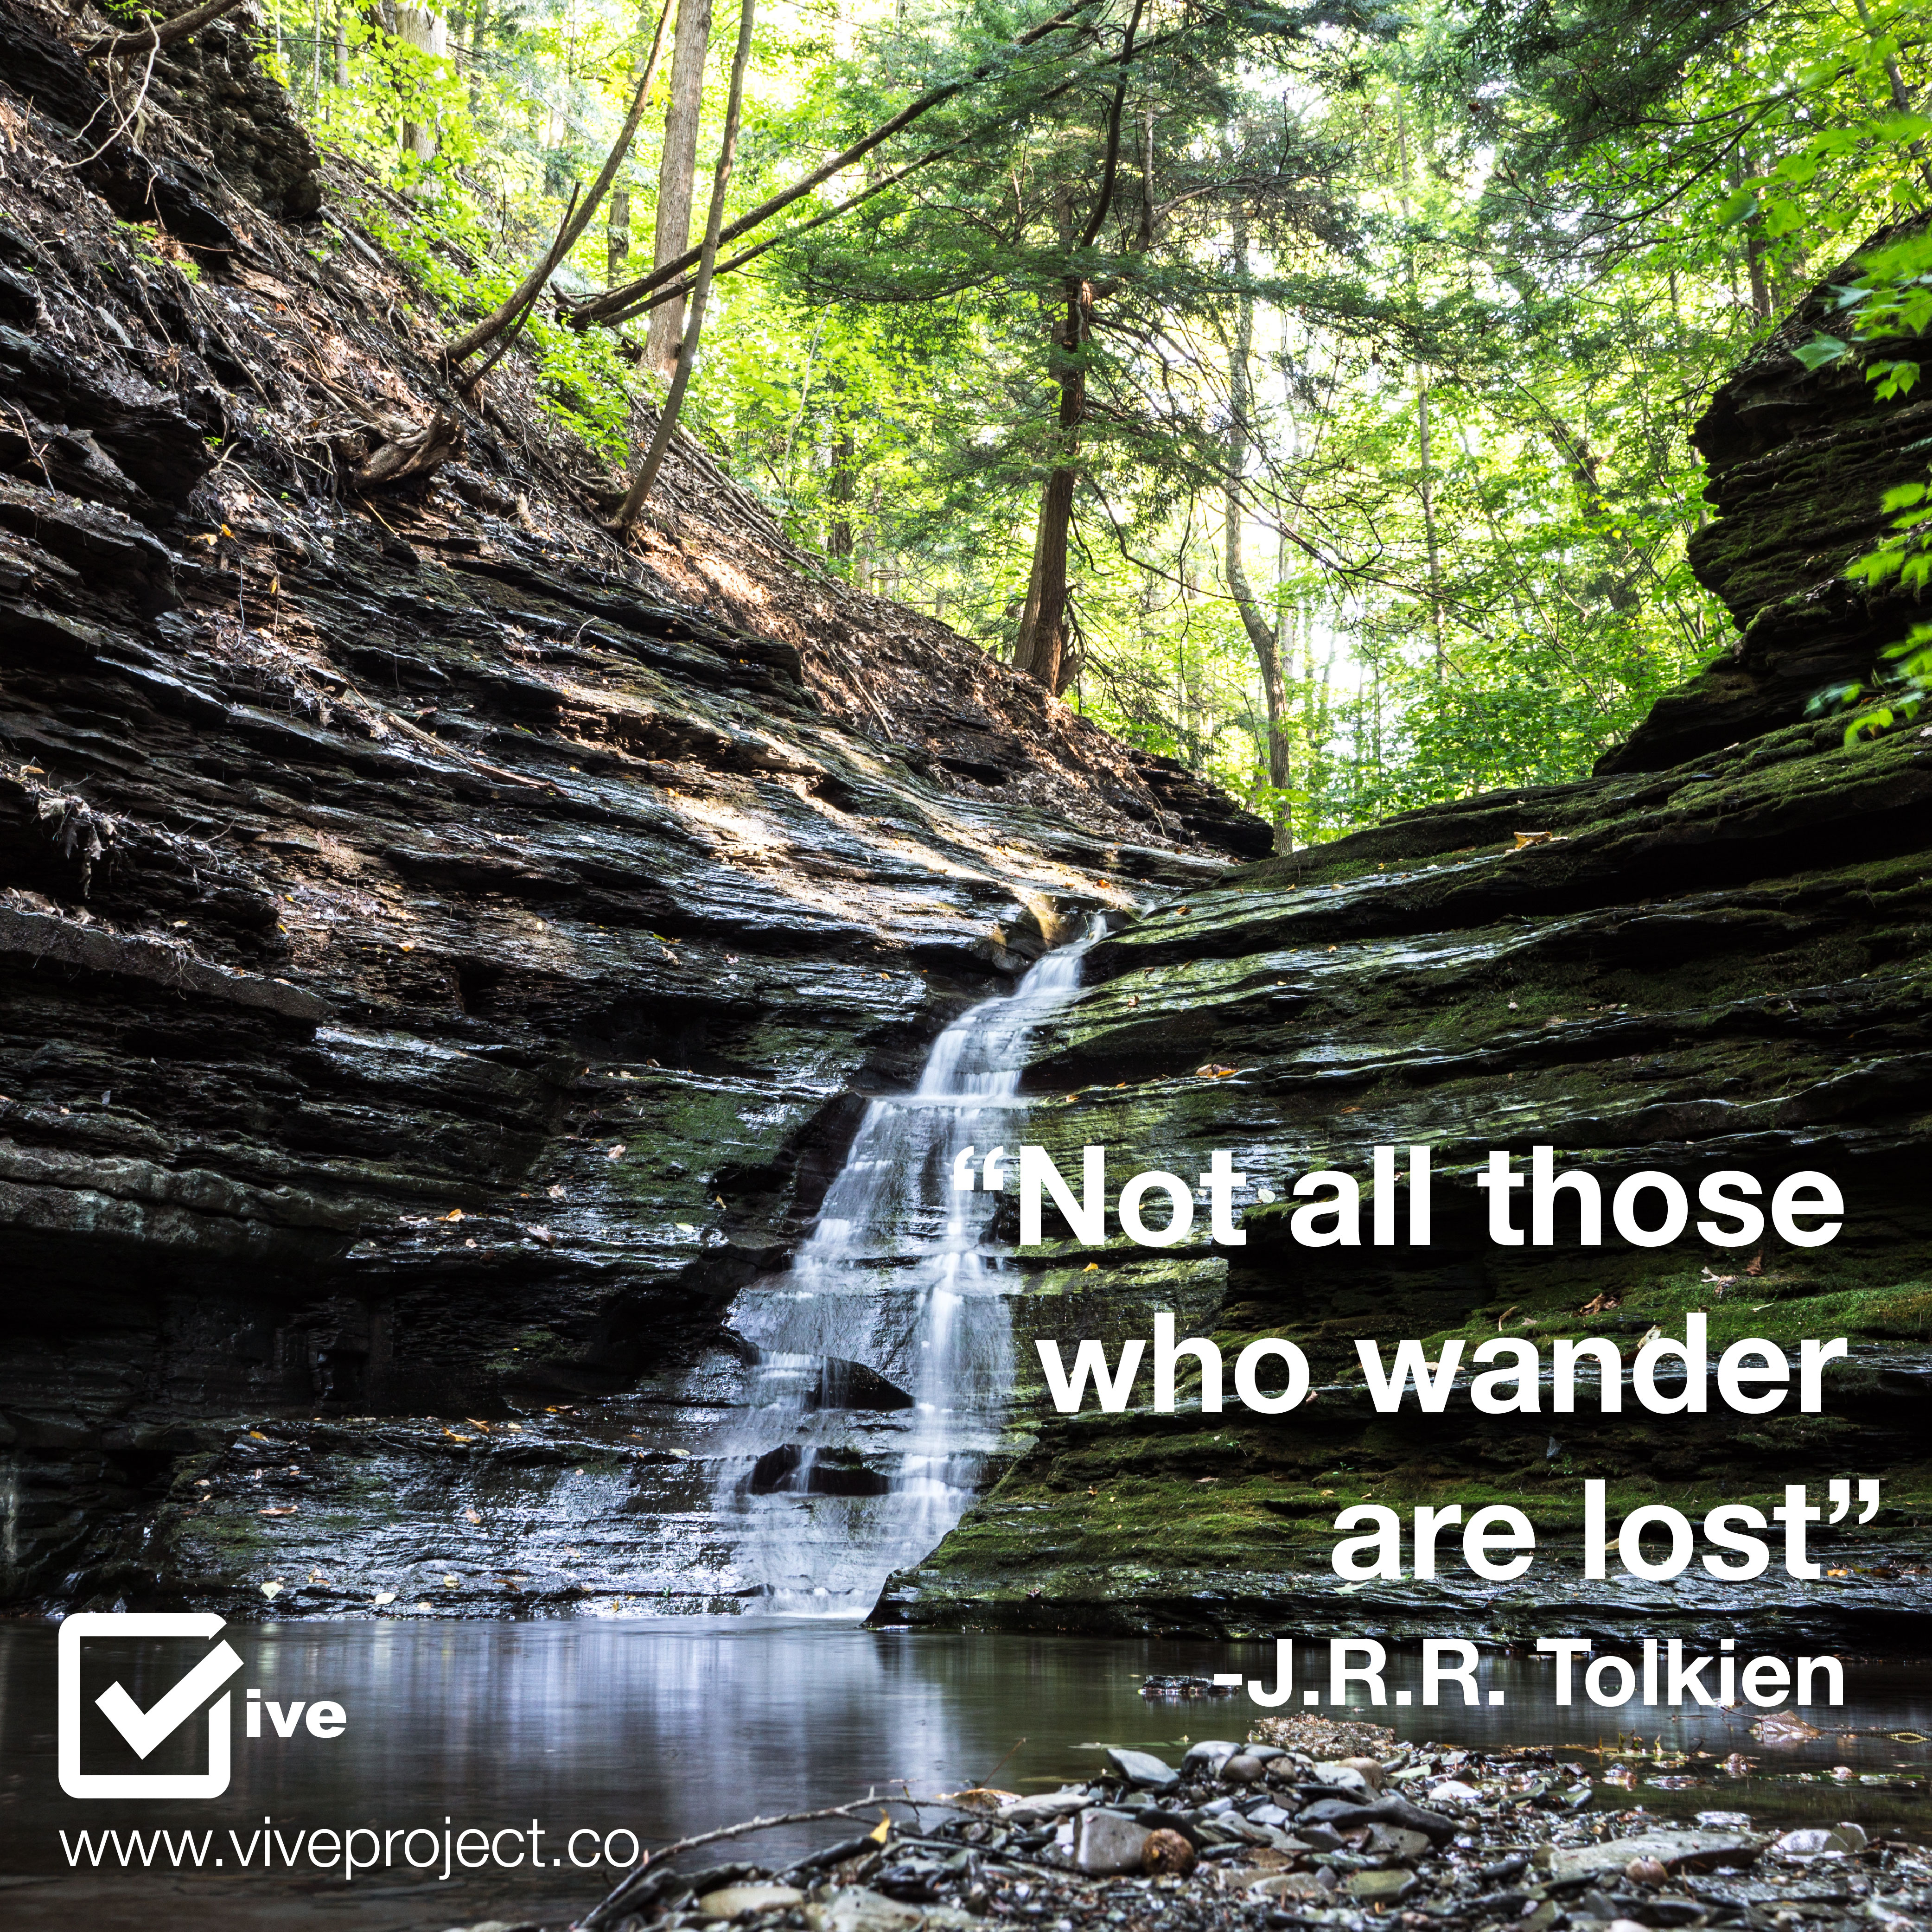 Not-all-those-who-wander-are-lost-jrr_tolkien_quote